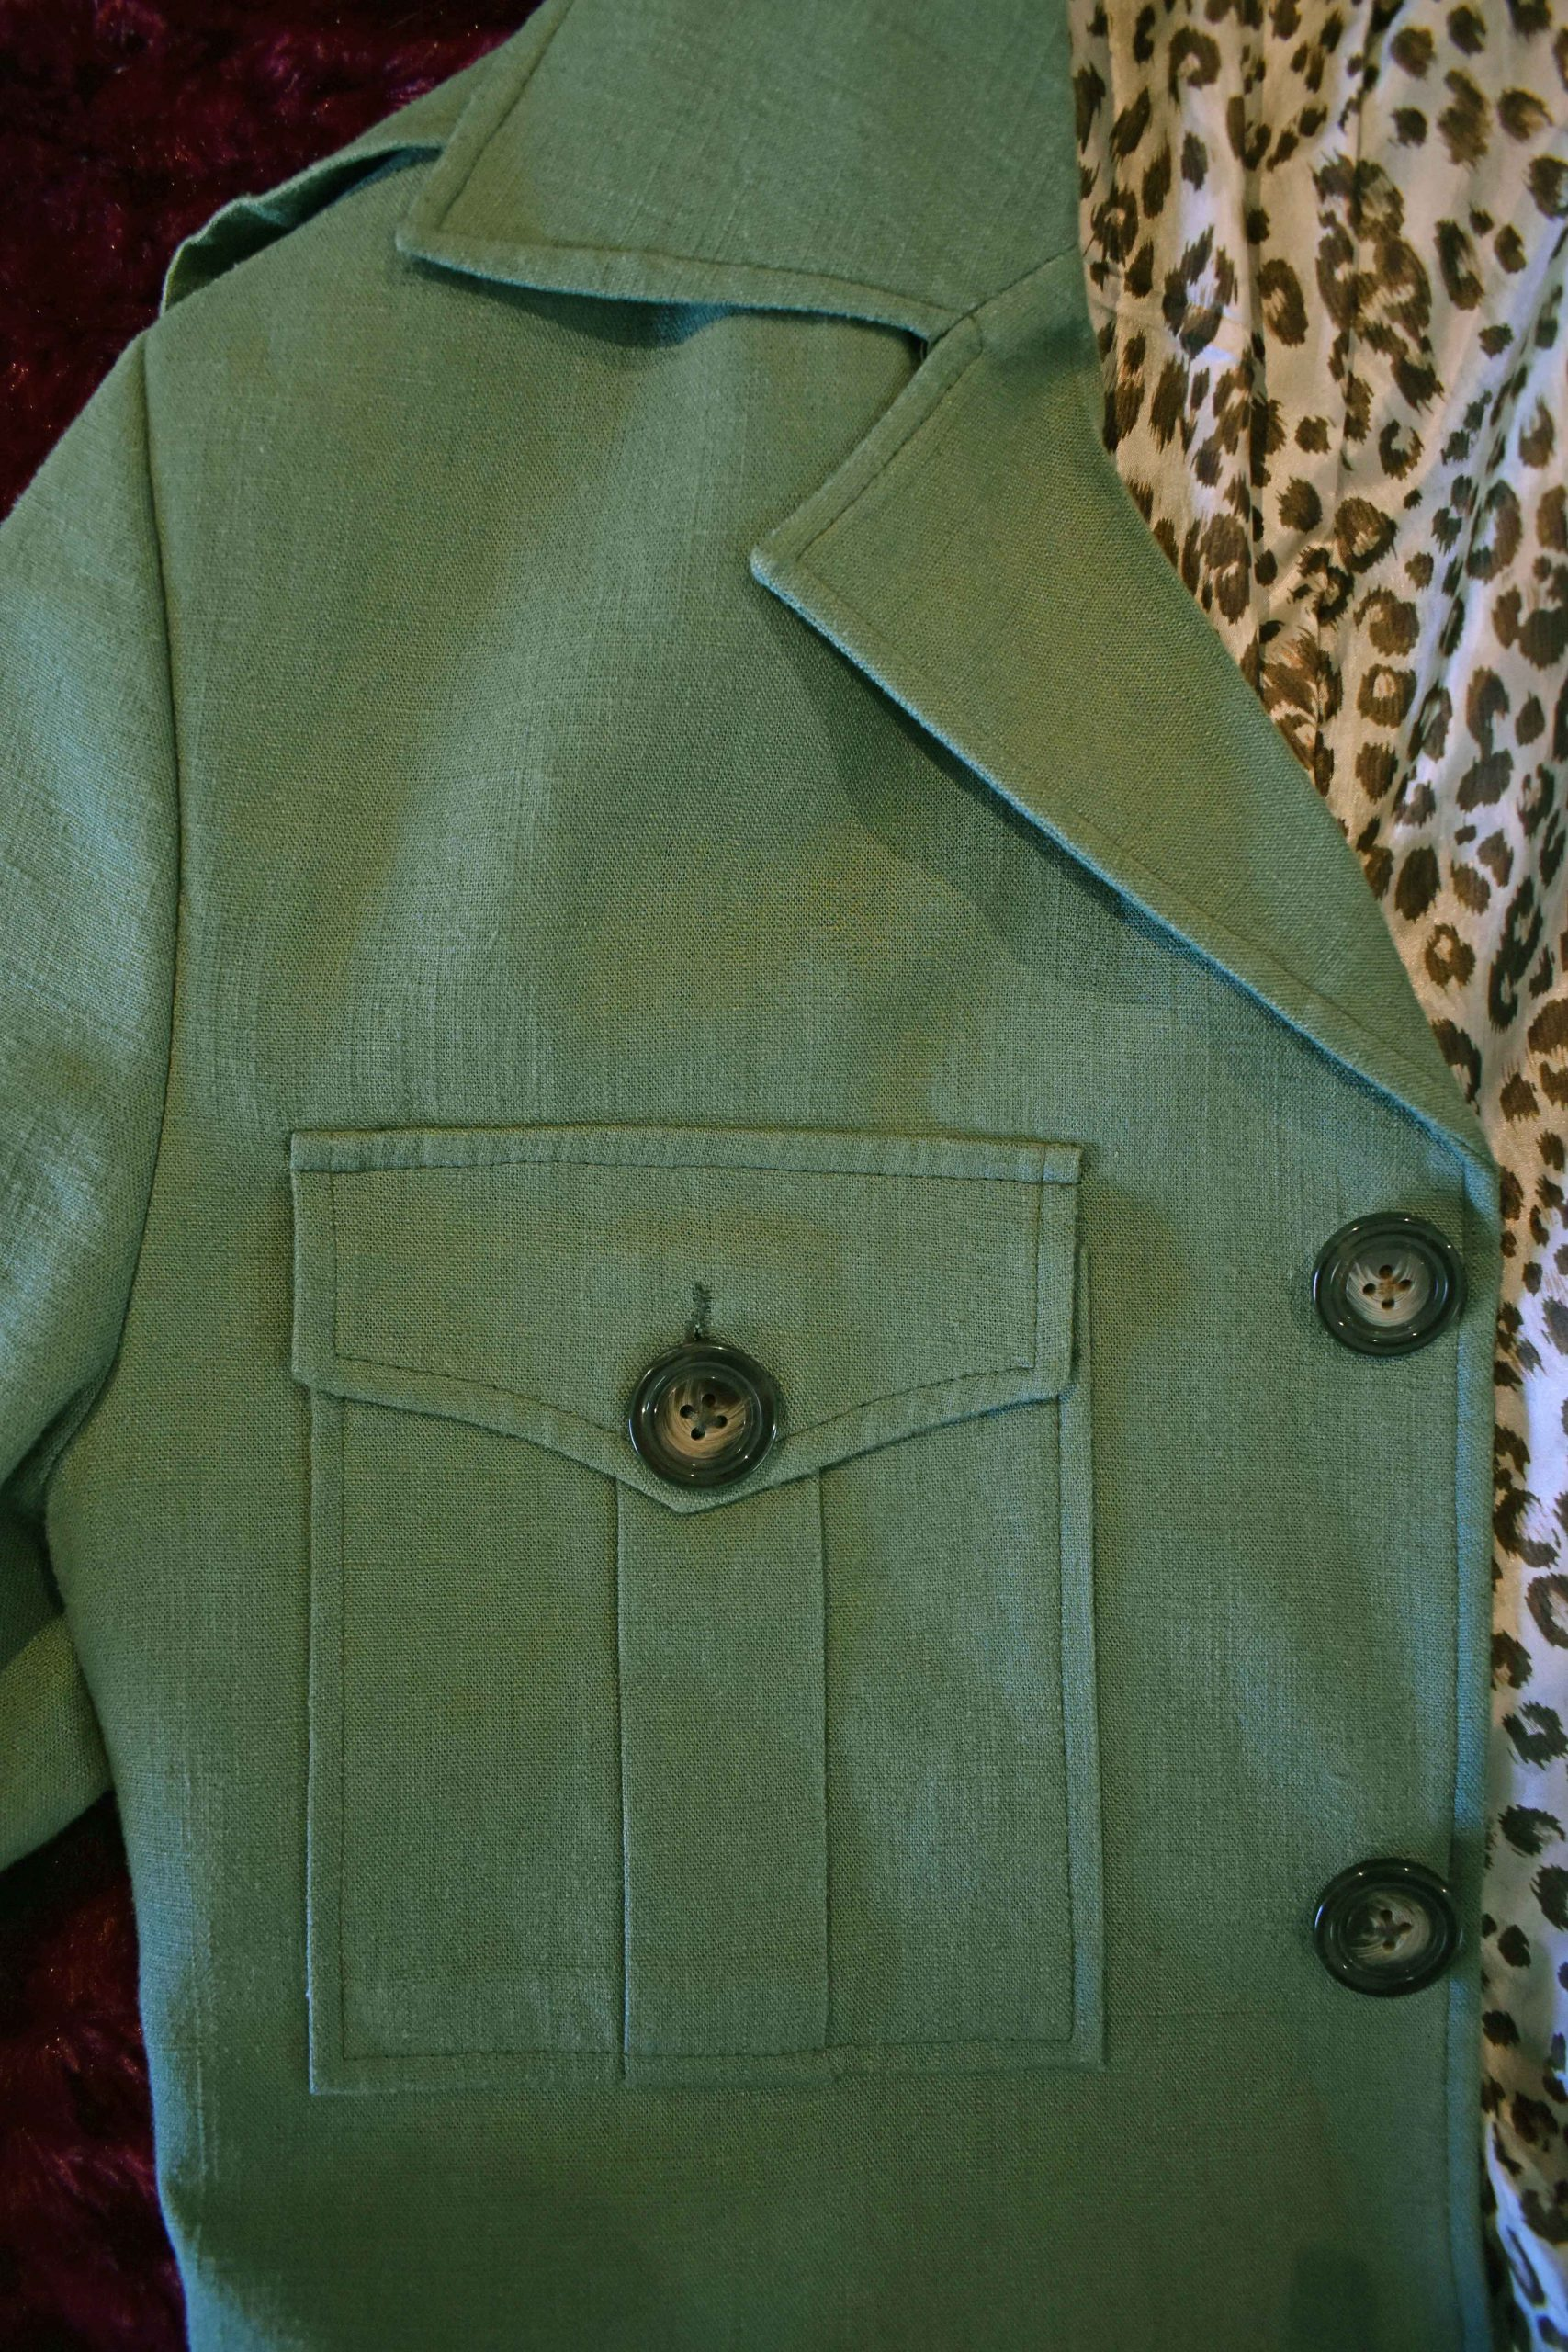 safari suit jacket details